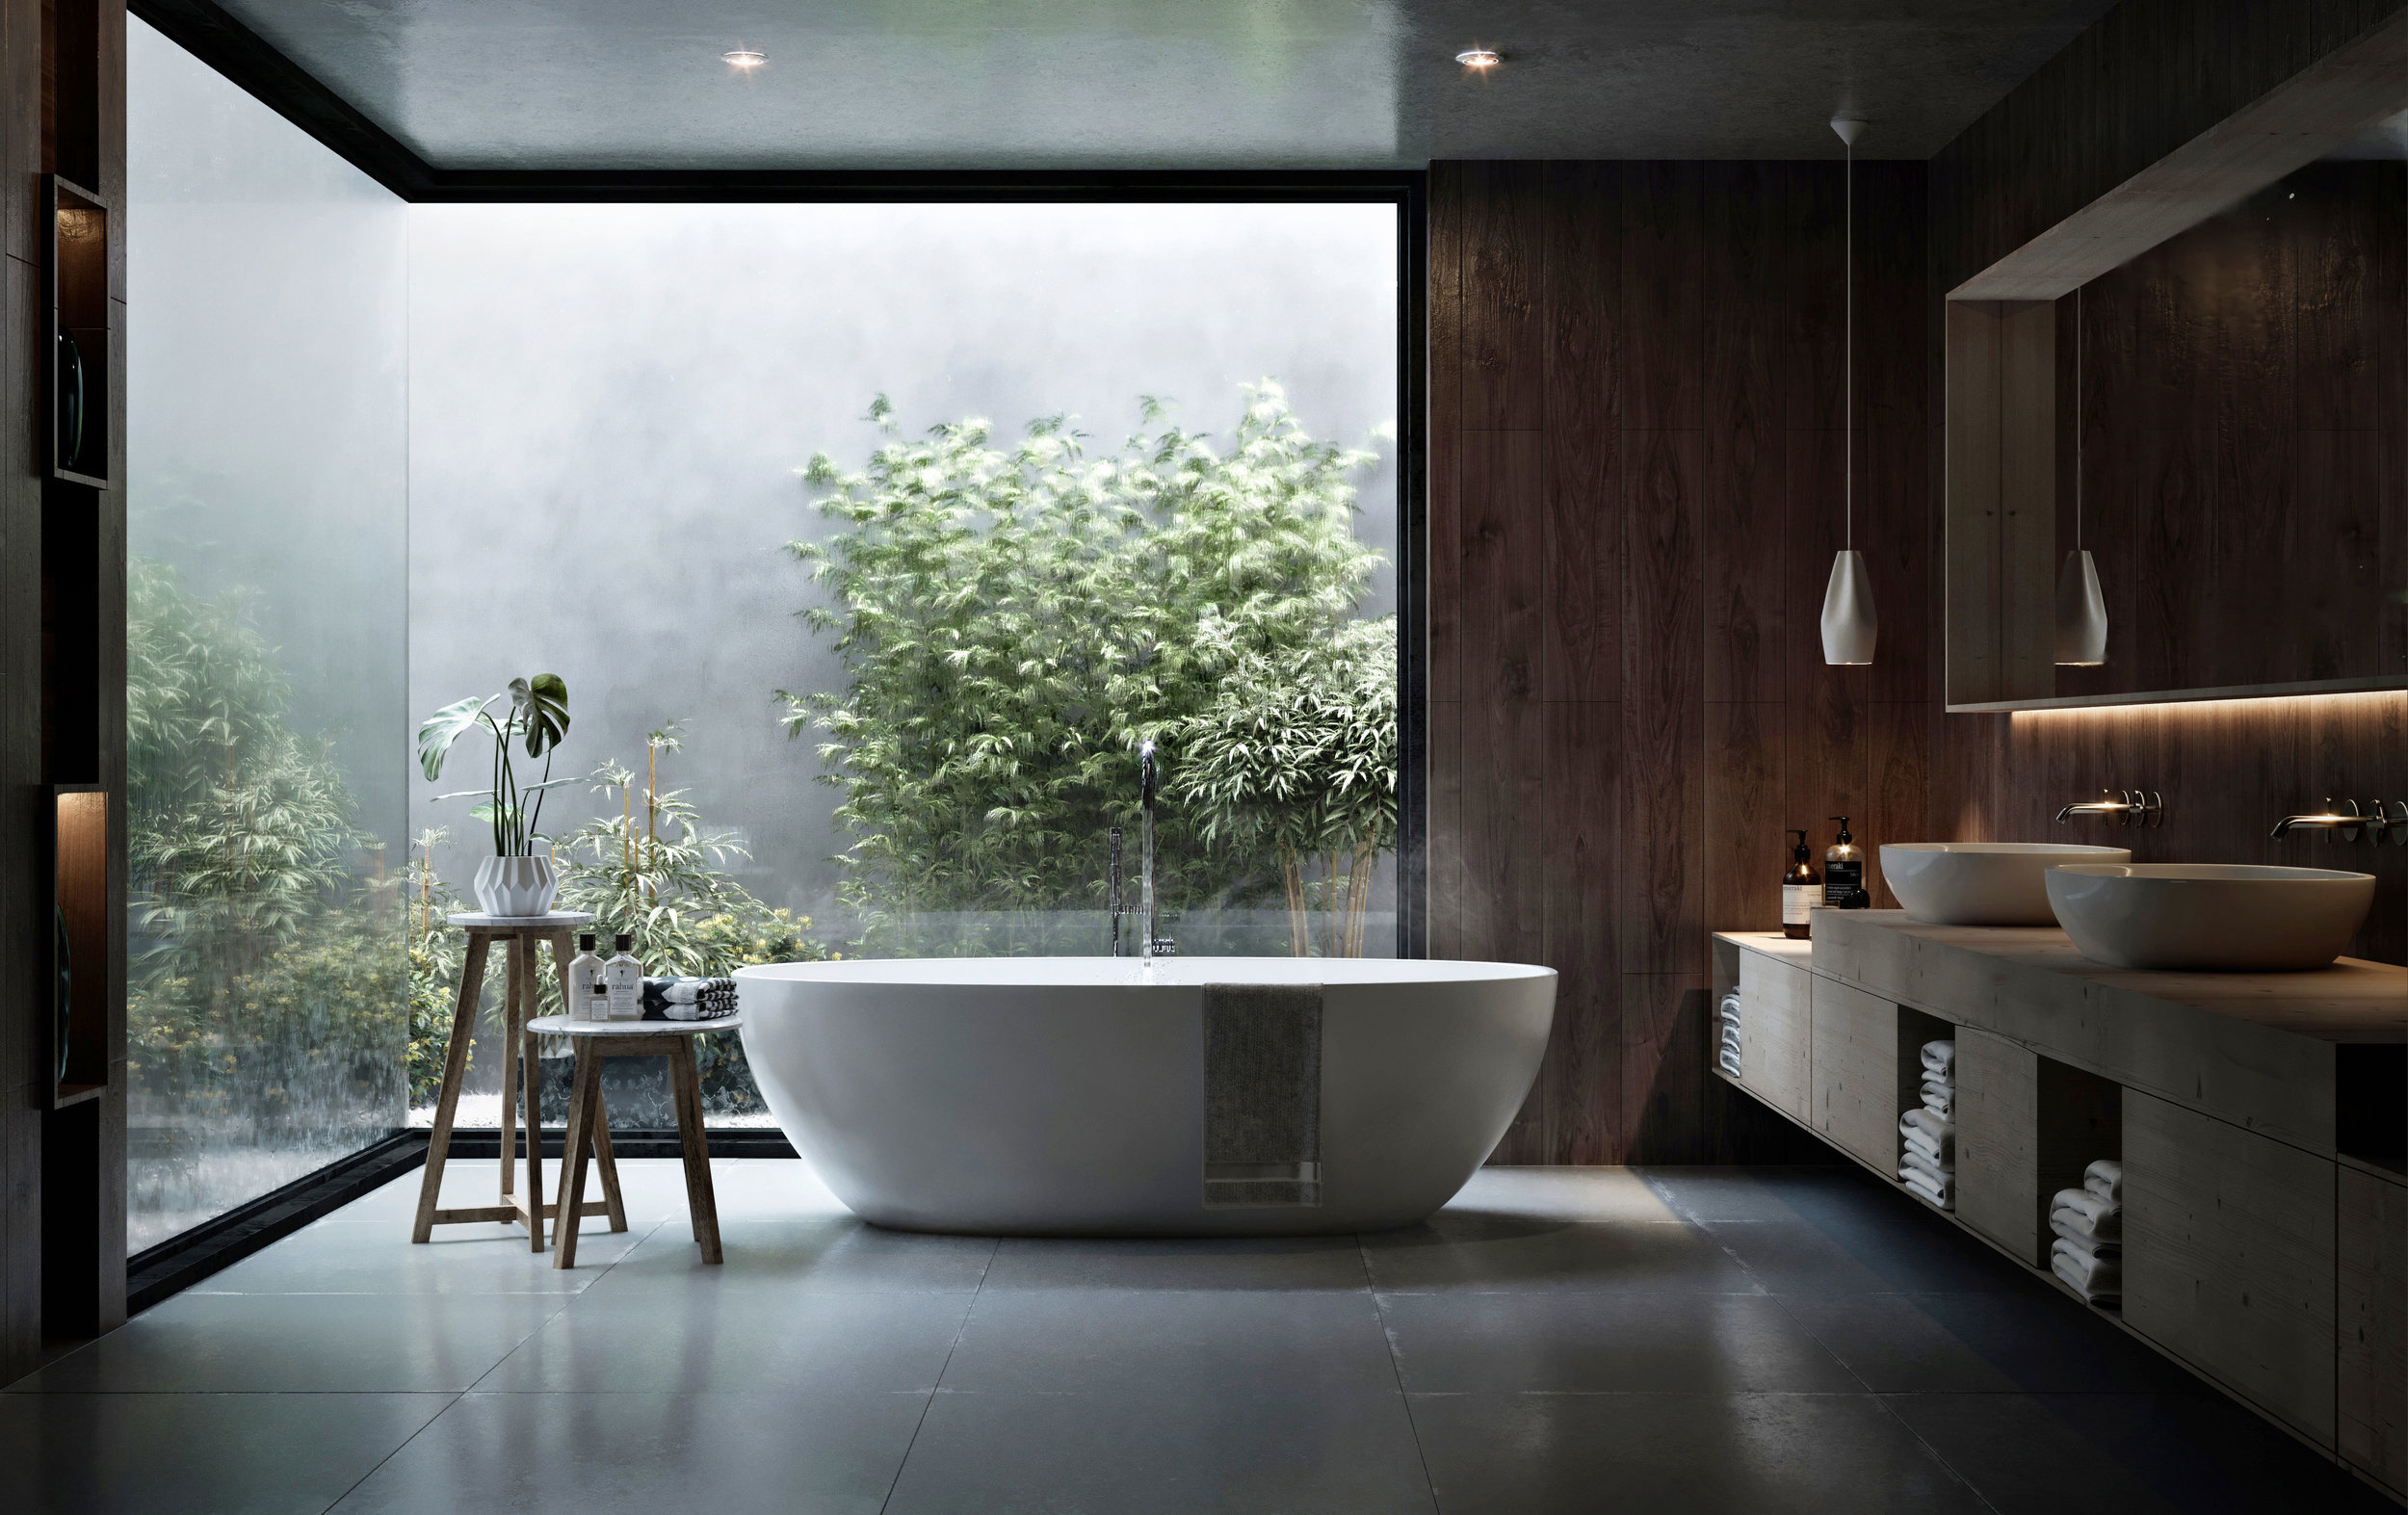 Copy of bathroom interior design visualization architectur